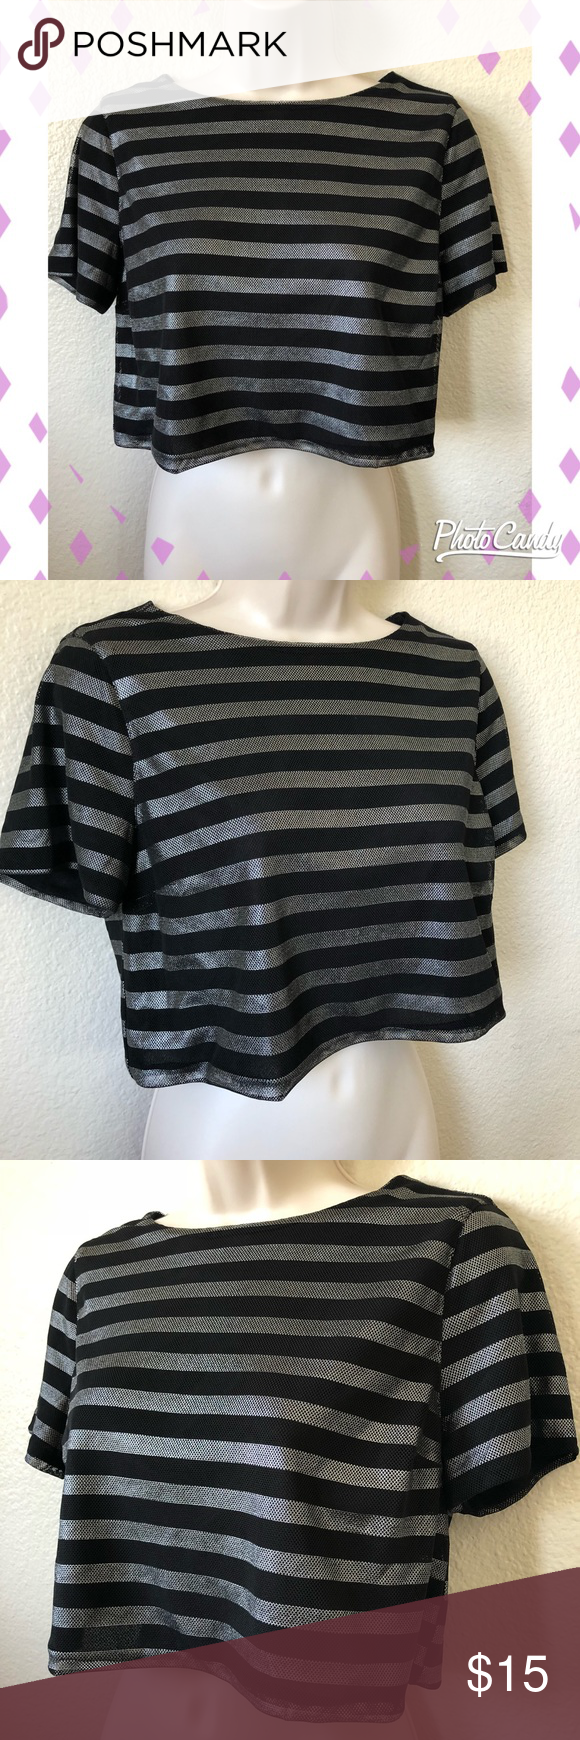 2208157eefb Metallic boxy crop top! Awesome crop top, black and silver striped with boxy  fit.. only worn once so in like-new condition! Size small by BCNU BCNU Tops  ...